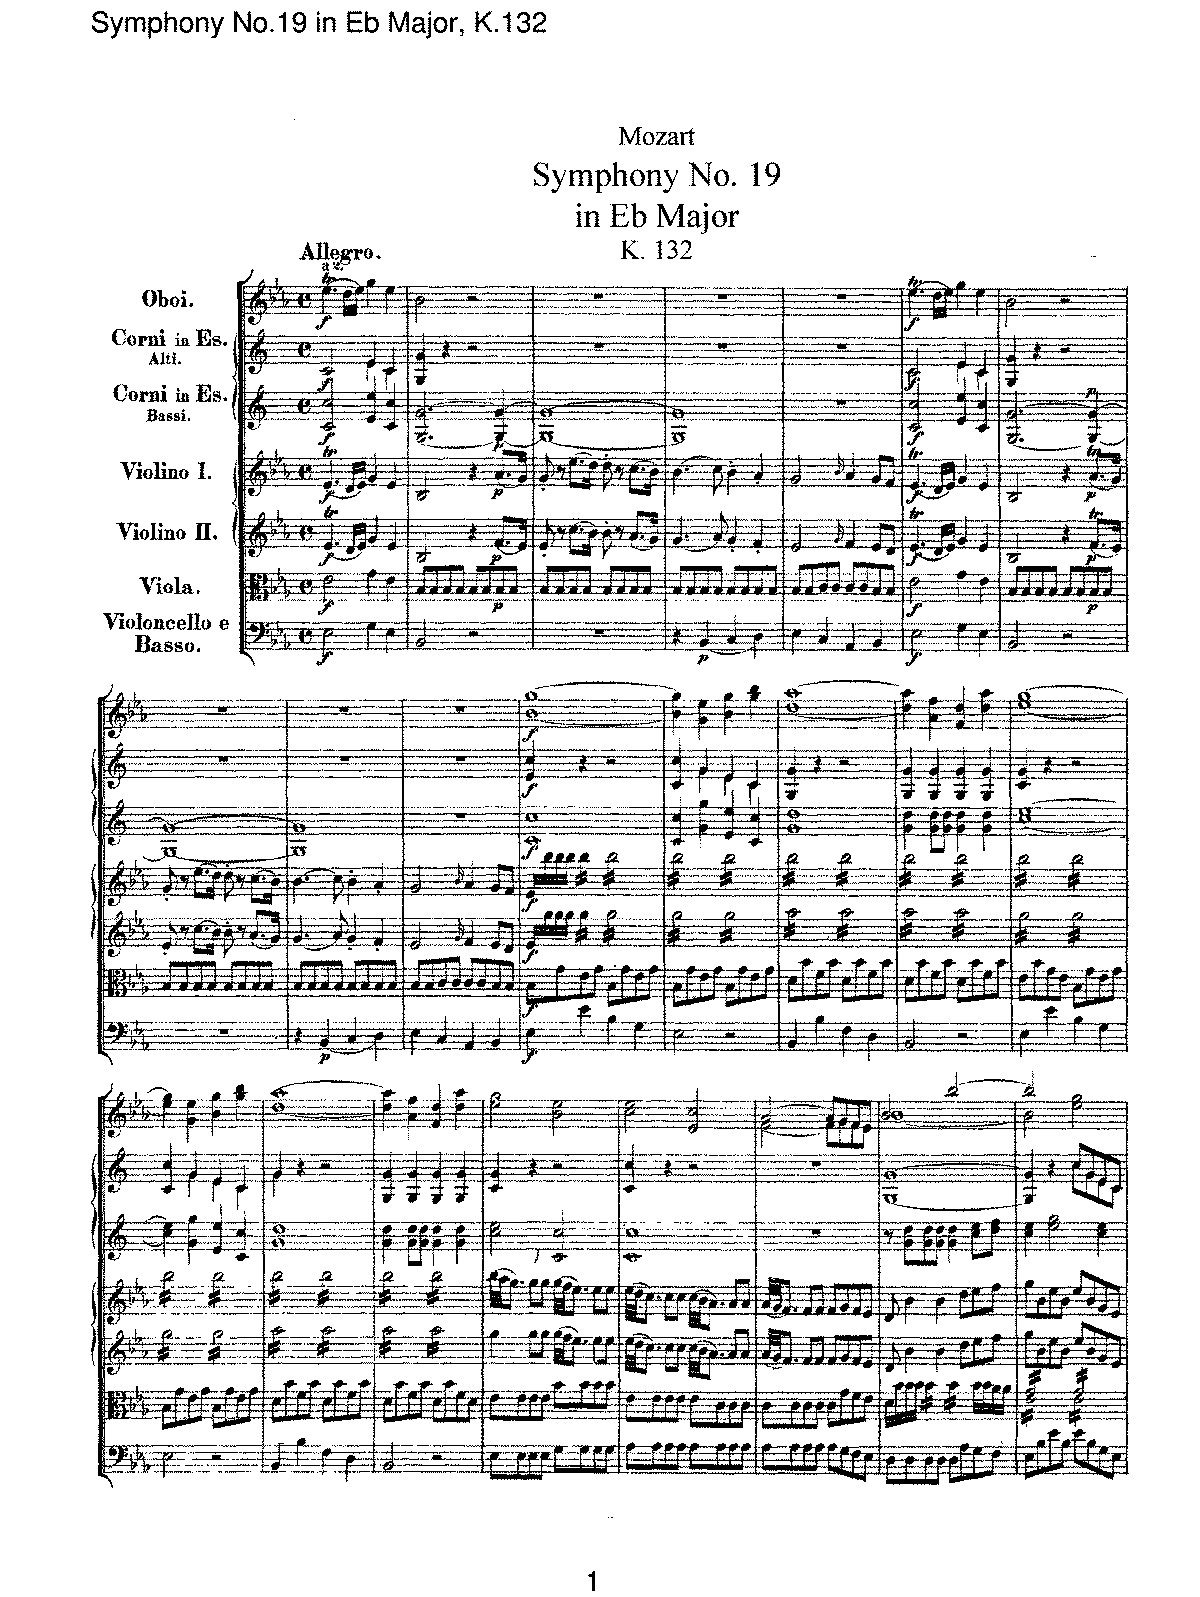 Mozart - Symphony No 19 in Eb Major, K132.pdf